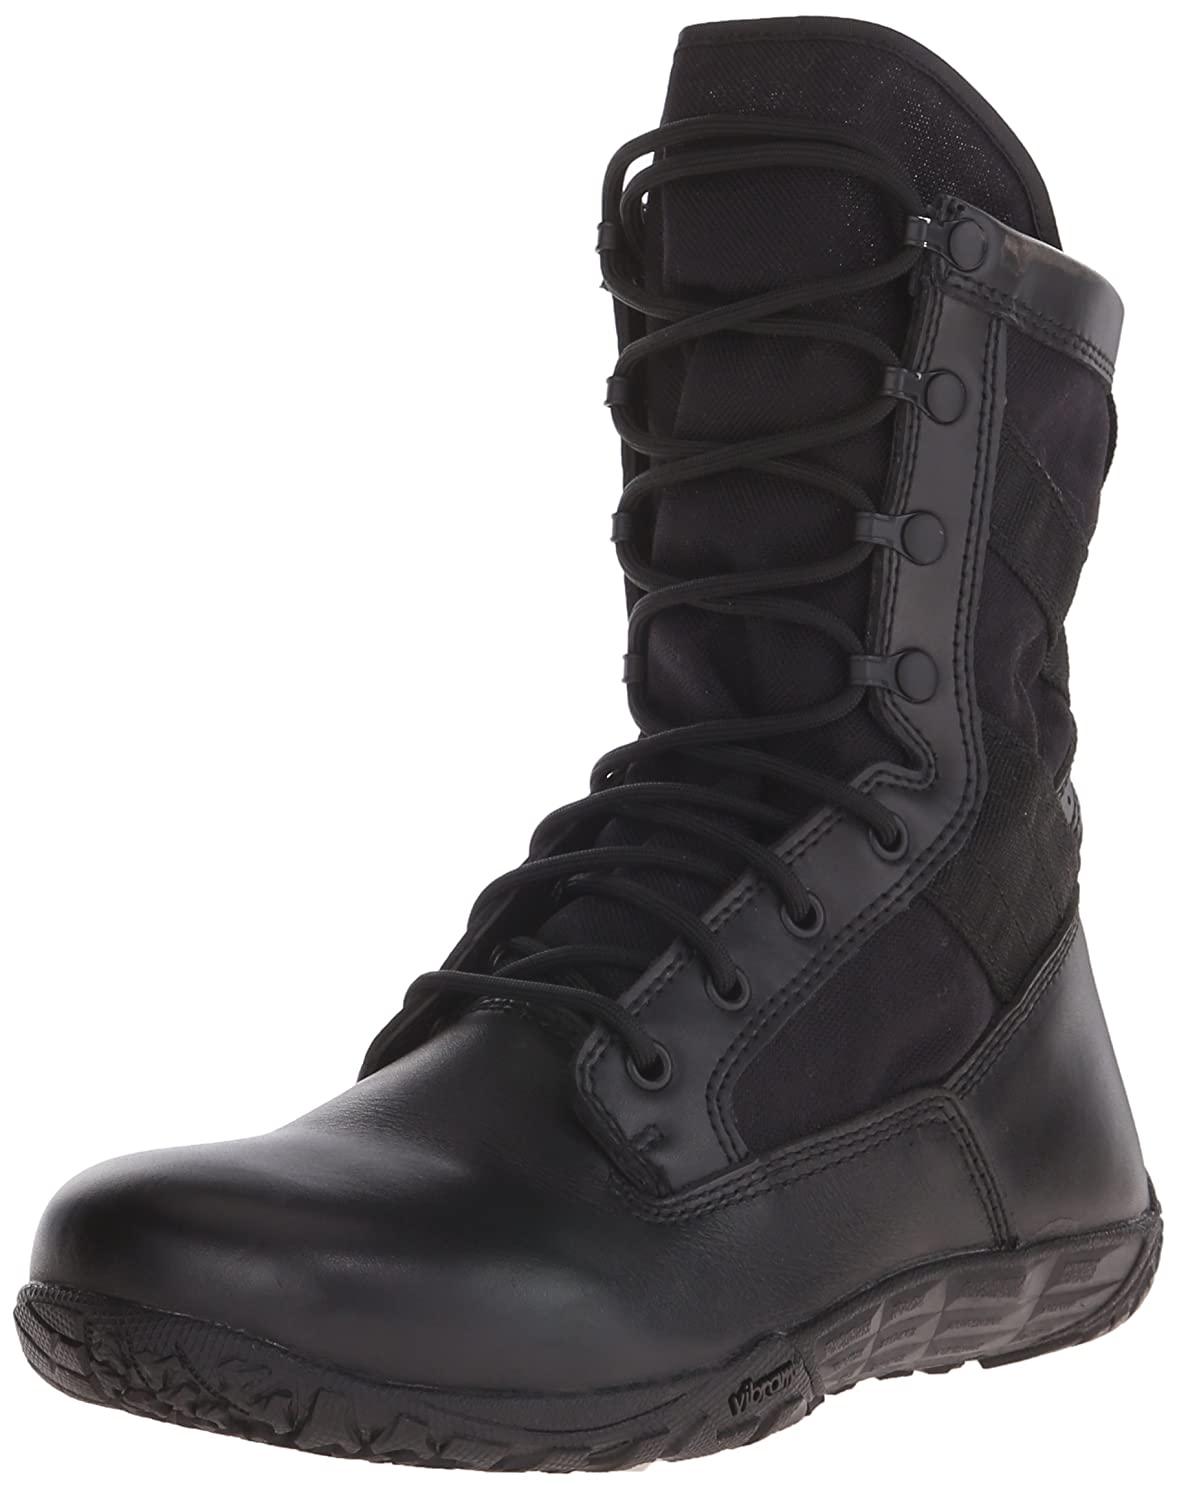 Beleville TR102 Tactical Research Minimalist Training Boot Belleville